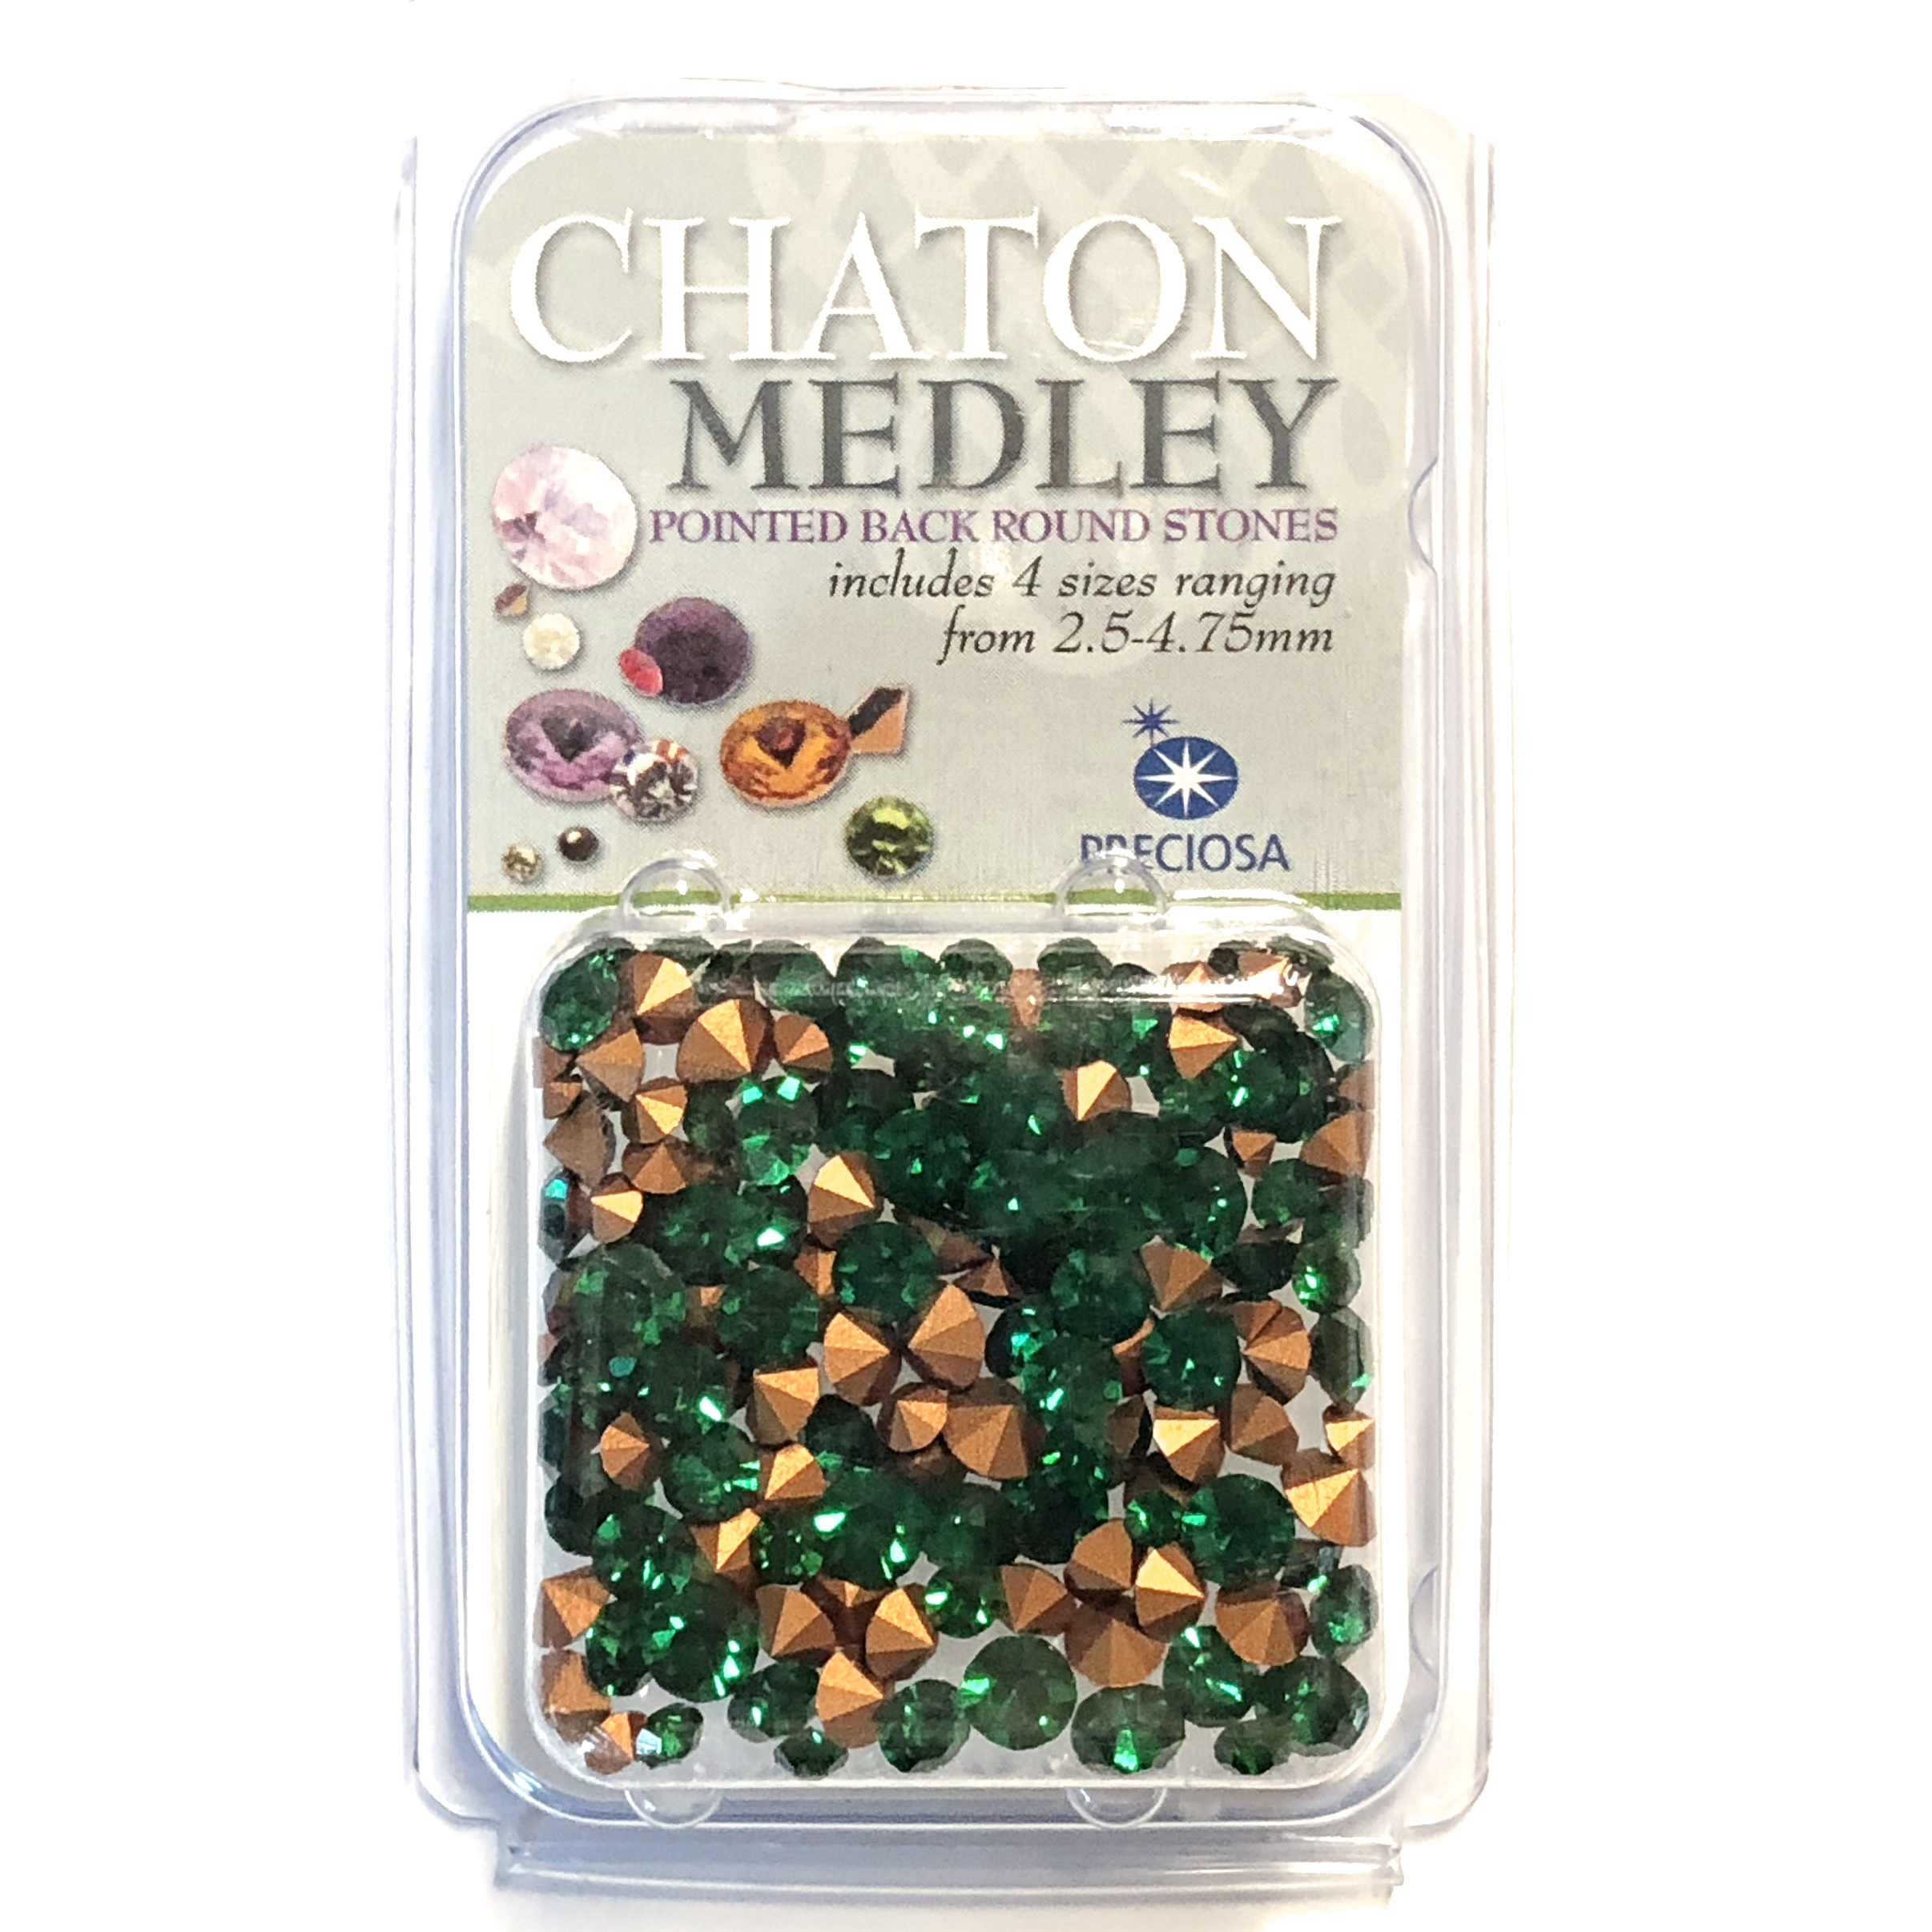 Emerald Green chatons, 08508, rhinestones, emerald, green rhinestones, emerald rhinestones, rhinestone, chaton, assorted sizes, chatons, Bsue Boutiques, pointed back, point back rhinestones, jewelry supplies, emerald green